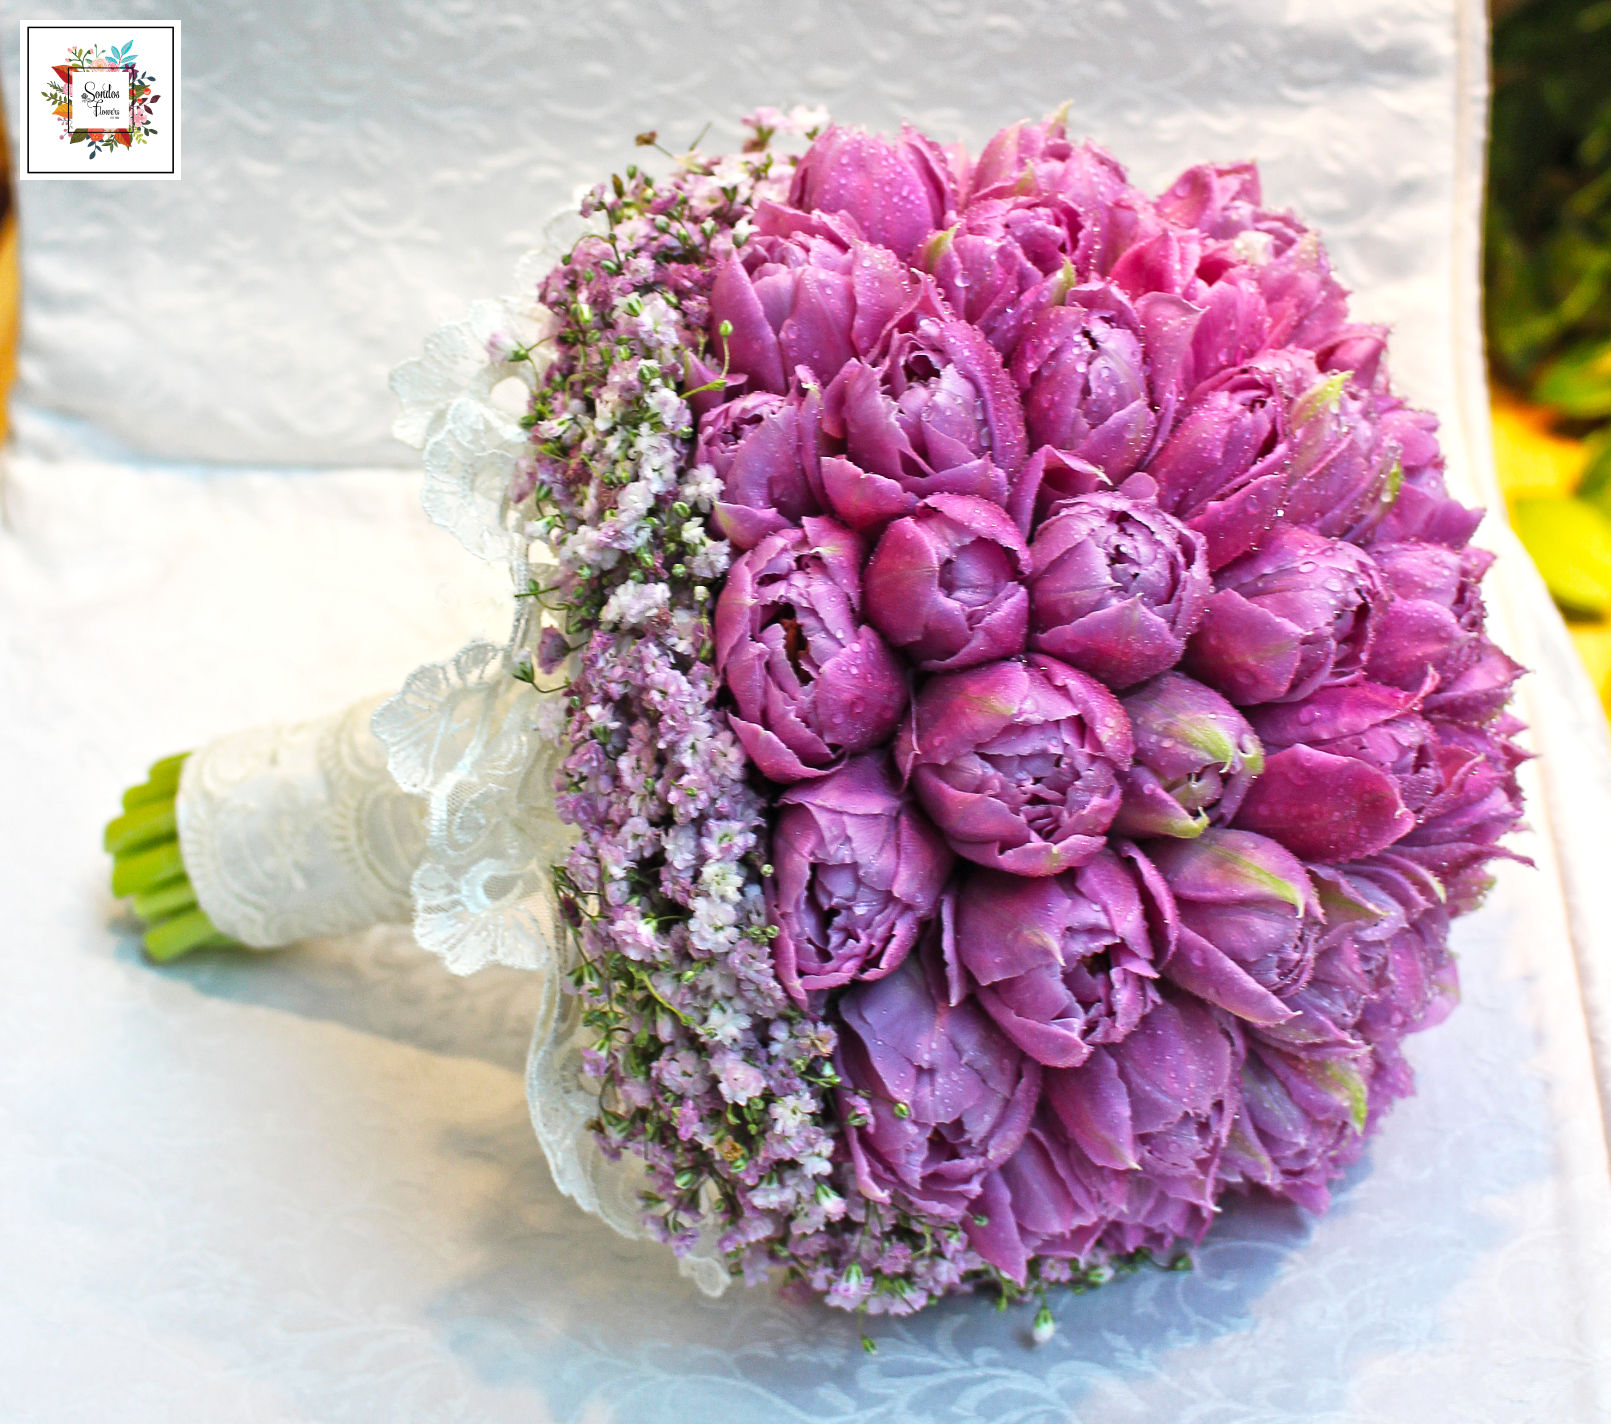 Bridal bouquets 38 send fresh flowers gifts online kuwait sondos bridal bouquets 38 izmirmasajfo Gallery